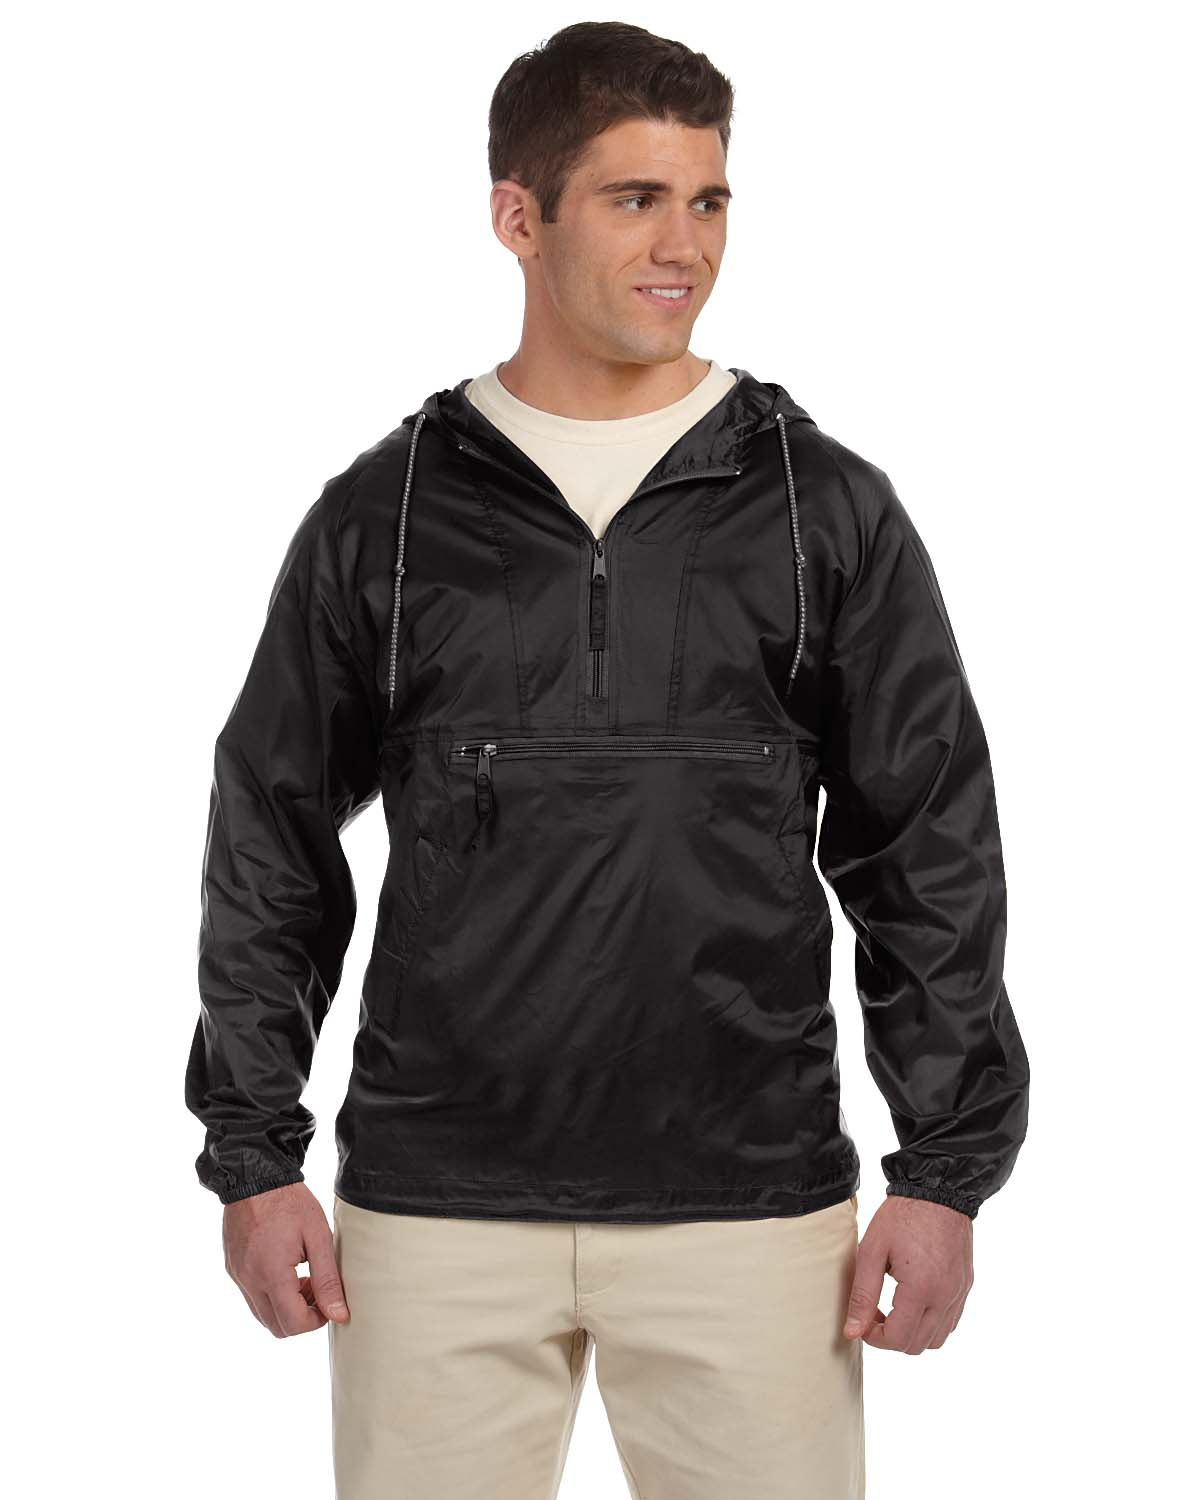 Harriton M750 Adult Packable Nylon Jacket